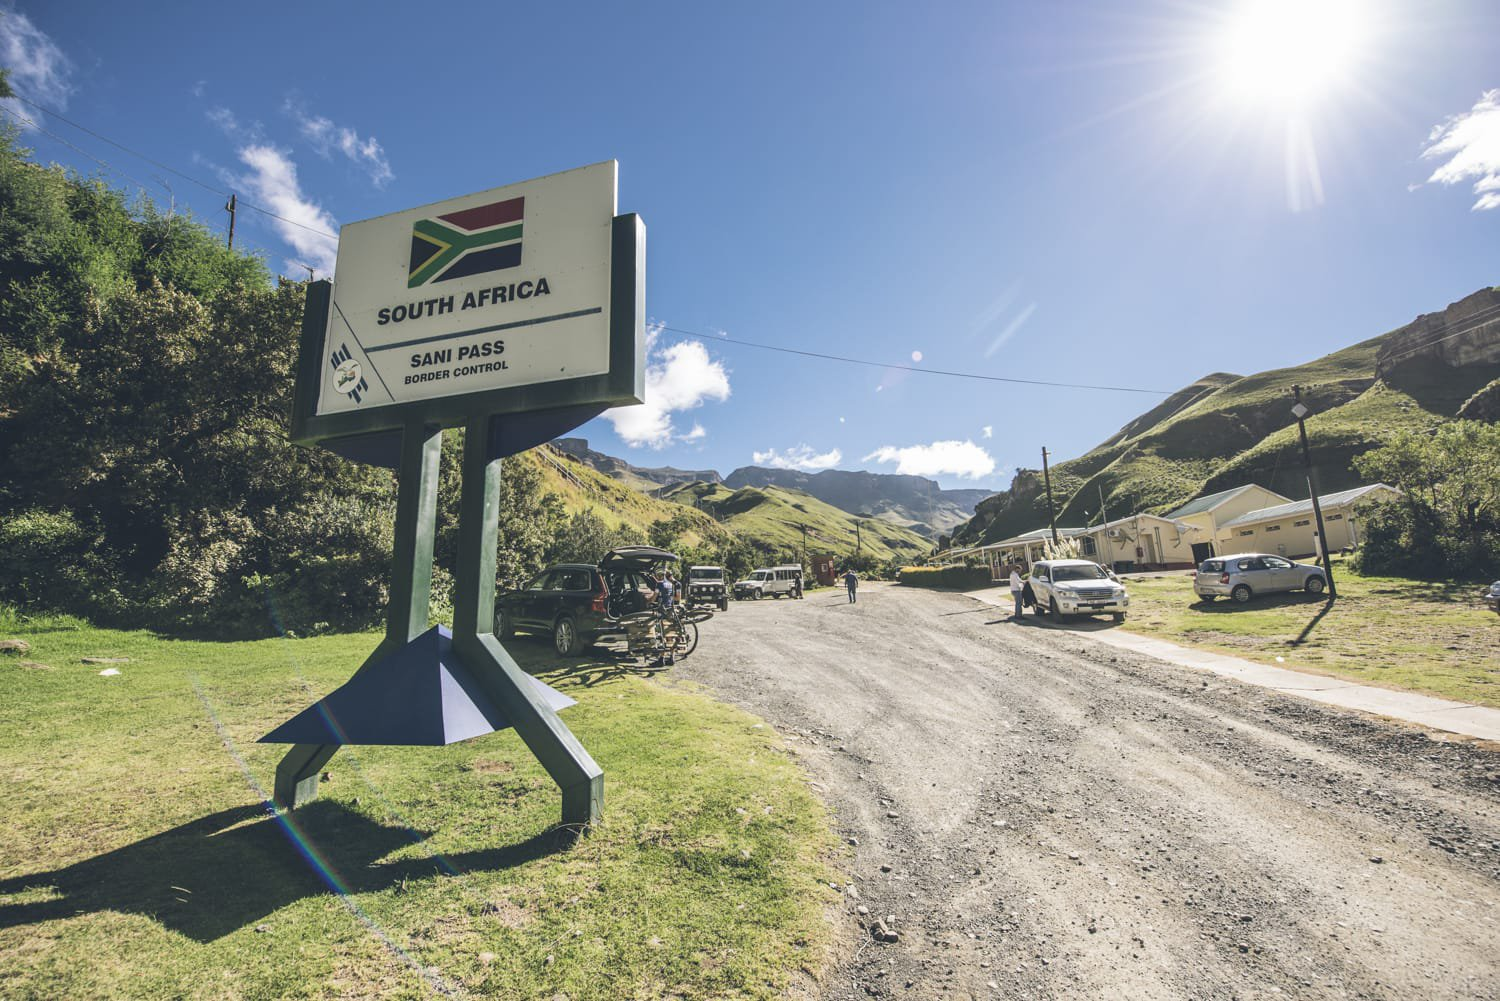 sani-pass-desmond-louw-bicycling-magazine-wowrides-0032